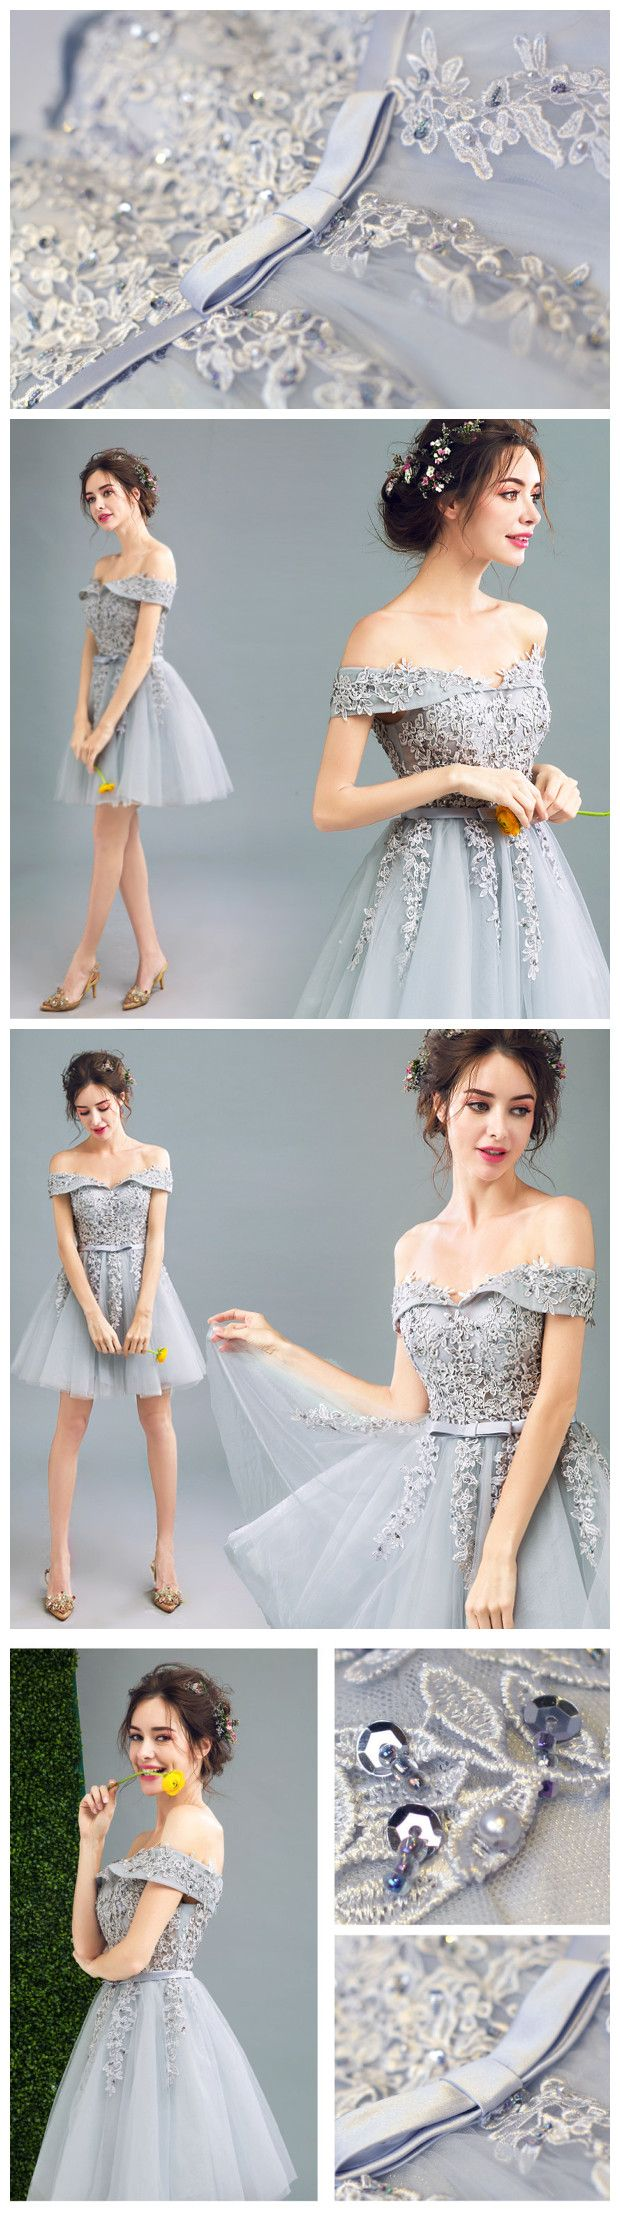 2017 A-LINE OFF-THE-SHOULDER TULLE SHORT PROM DRSESS HOMECOMING DRESS SKY438